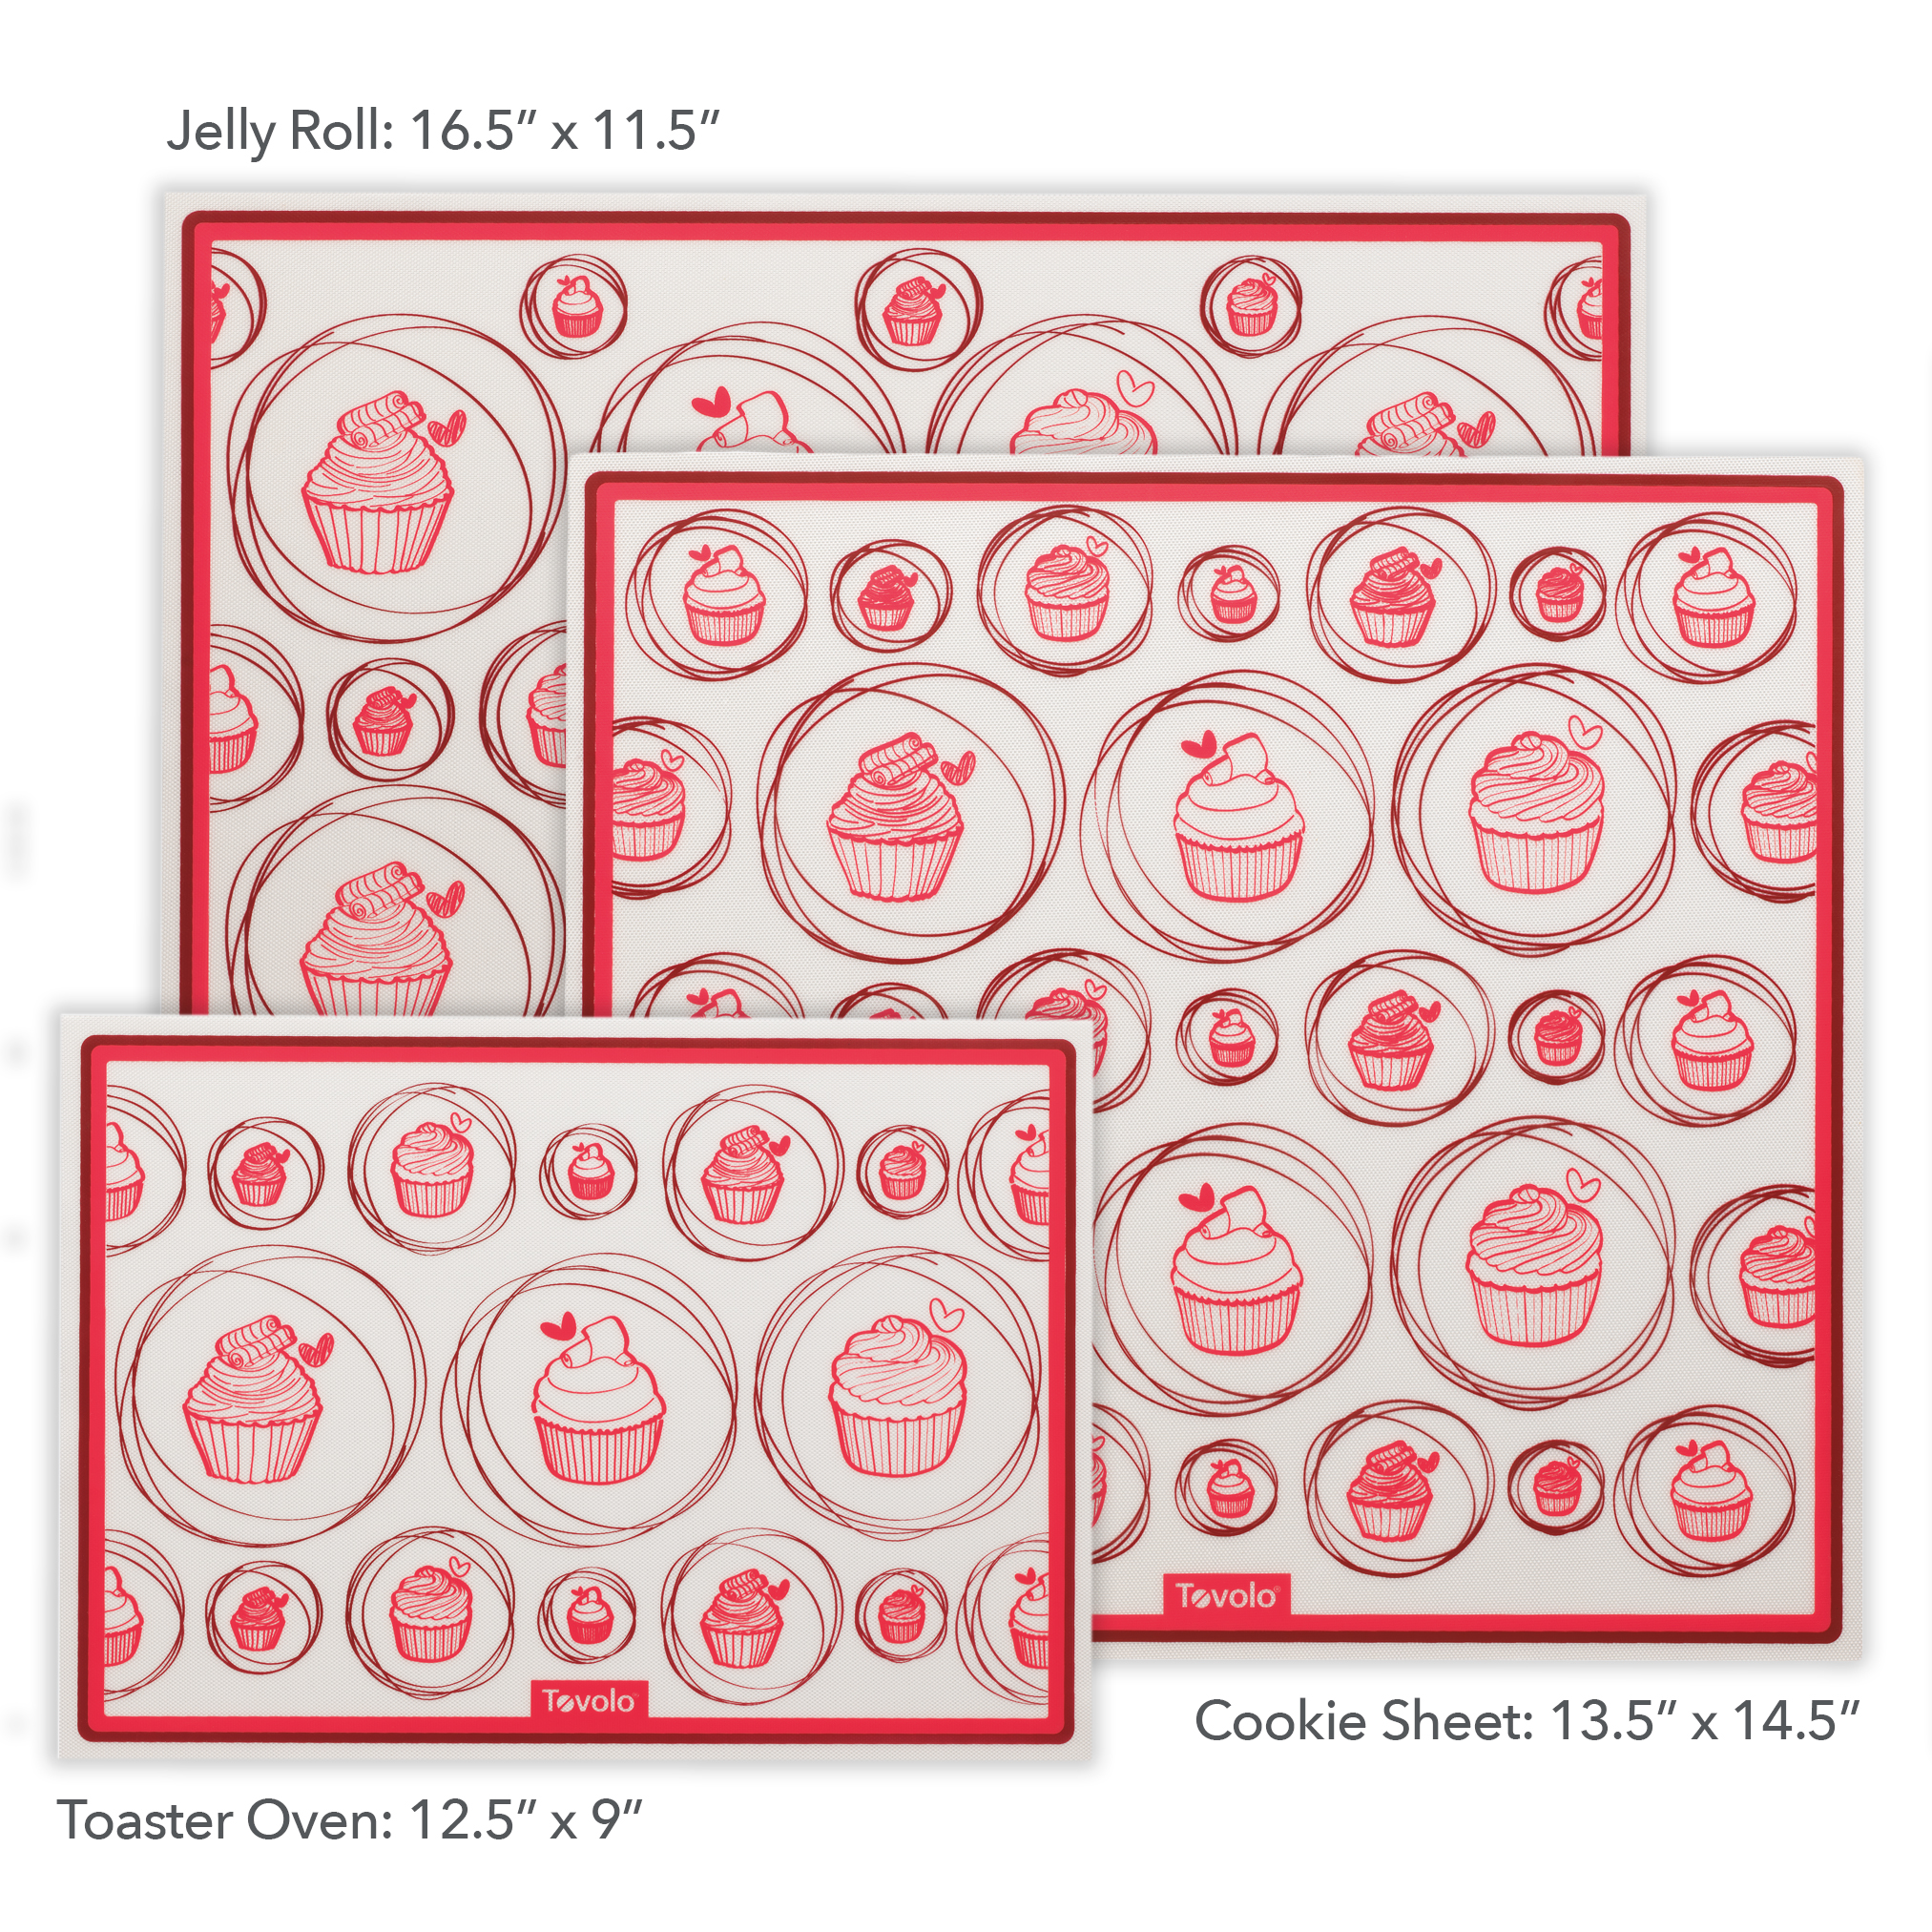 Silicone Baking Mat Jelly Roll Tovolo